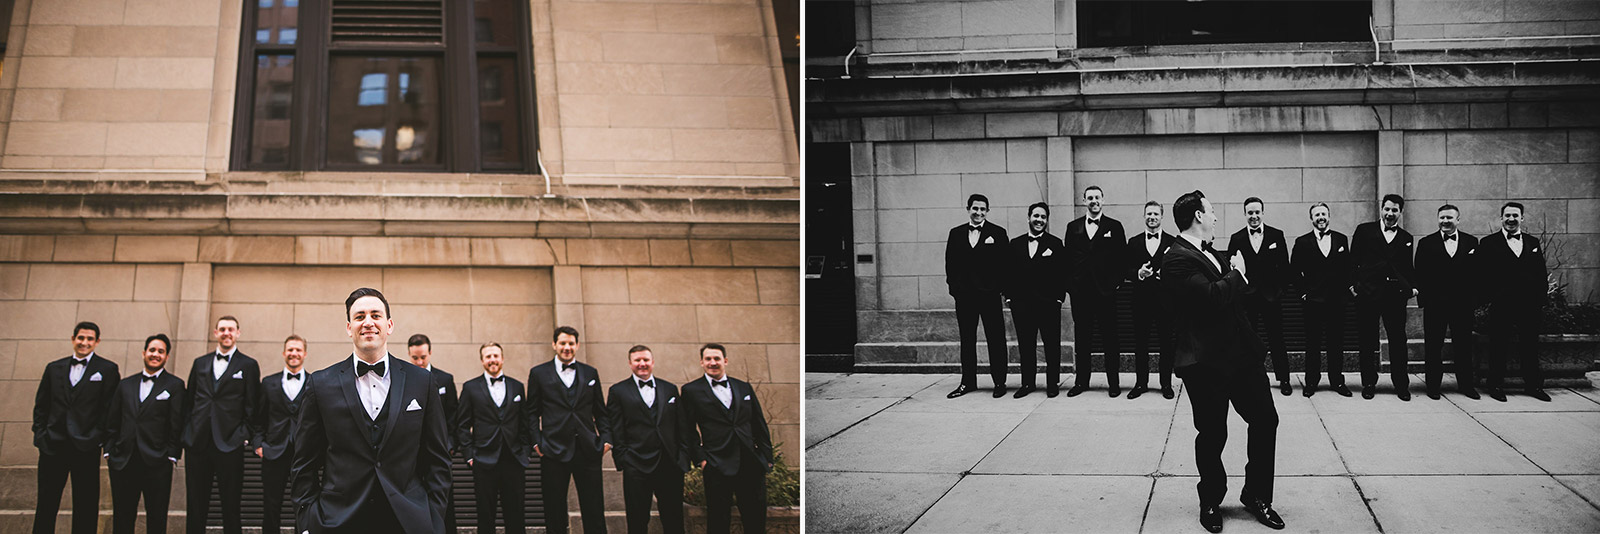 21 groom and groomsmen - Kayla + Terry // Drake Hotel Chicago Wedding Photos